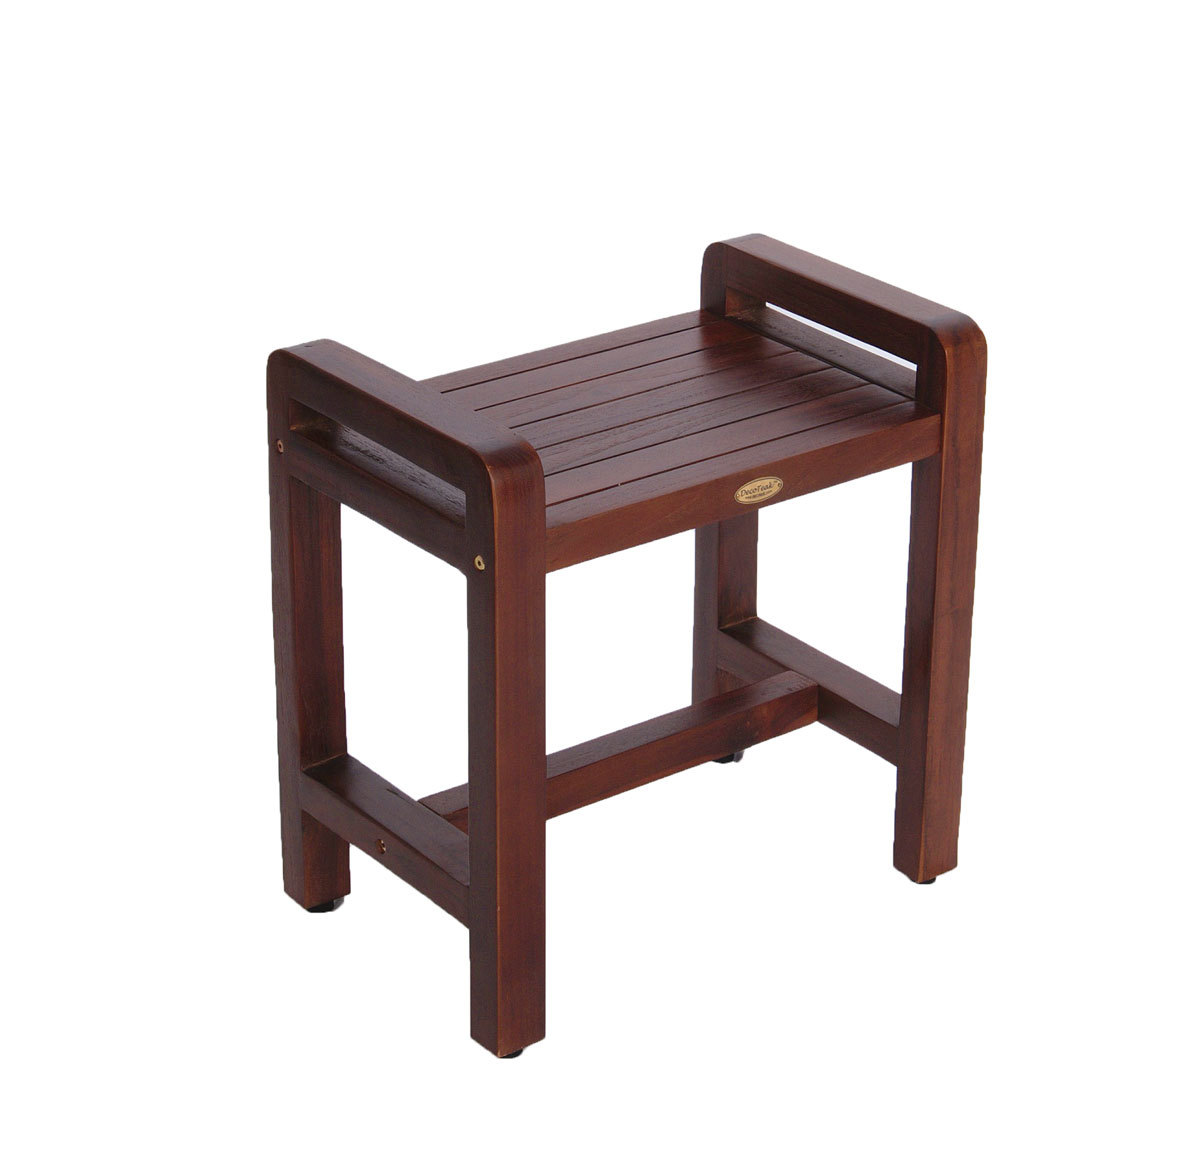 DT106 Classic Ergonomic Teak Spa Stool with Shelf and Lift Aide Arms